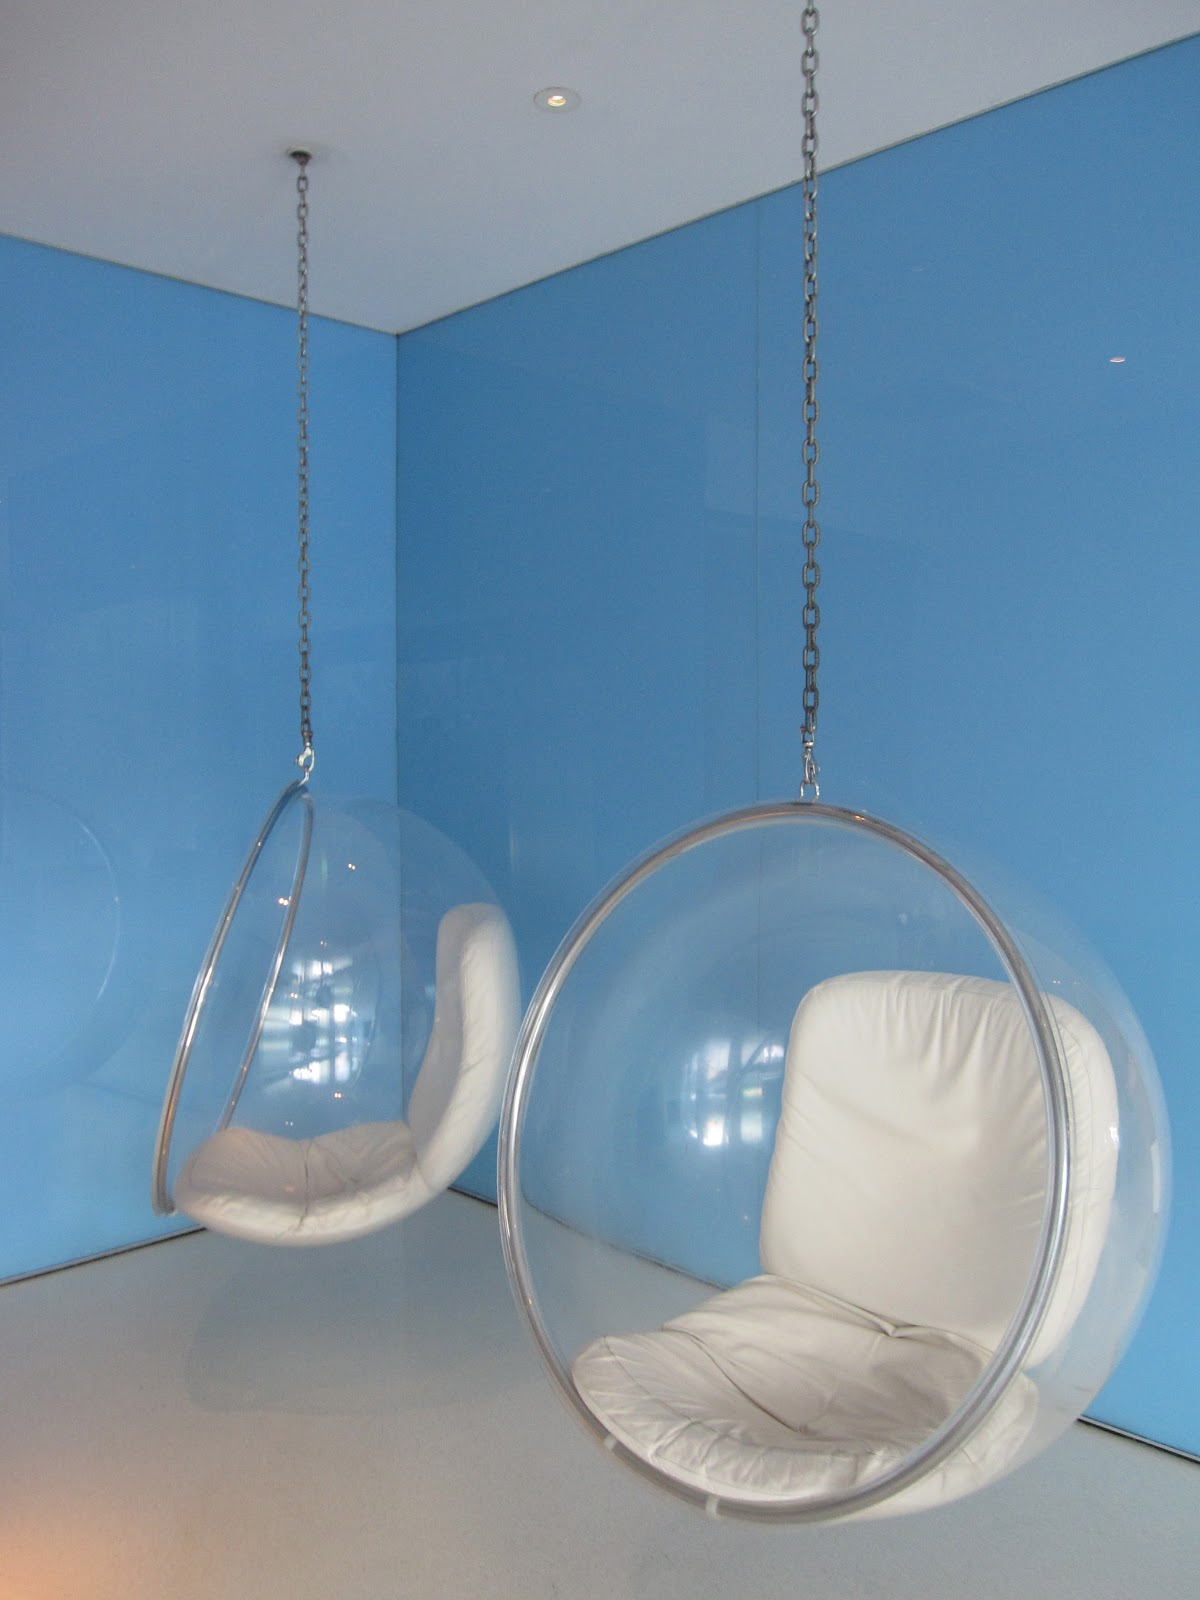 Chair hanging from ceiling